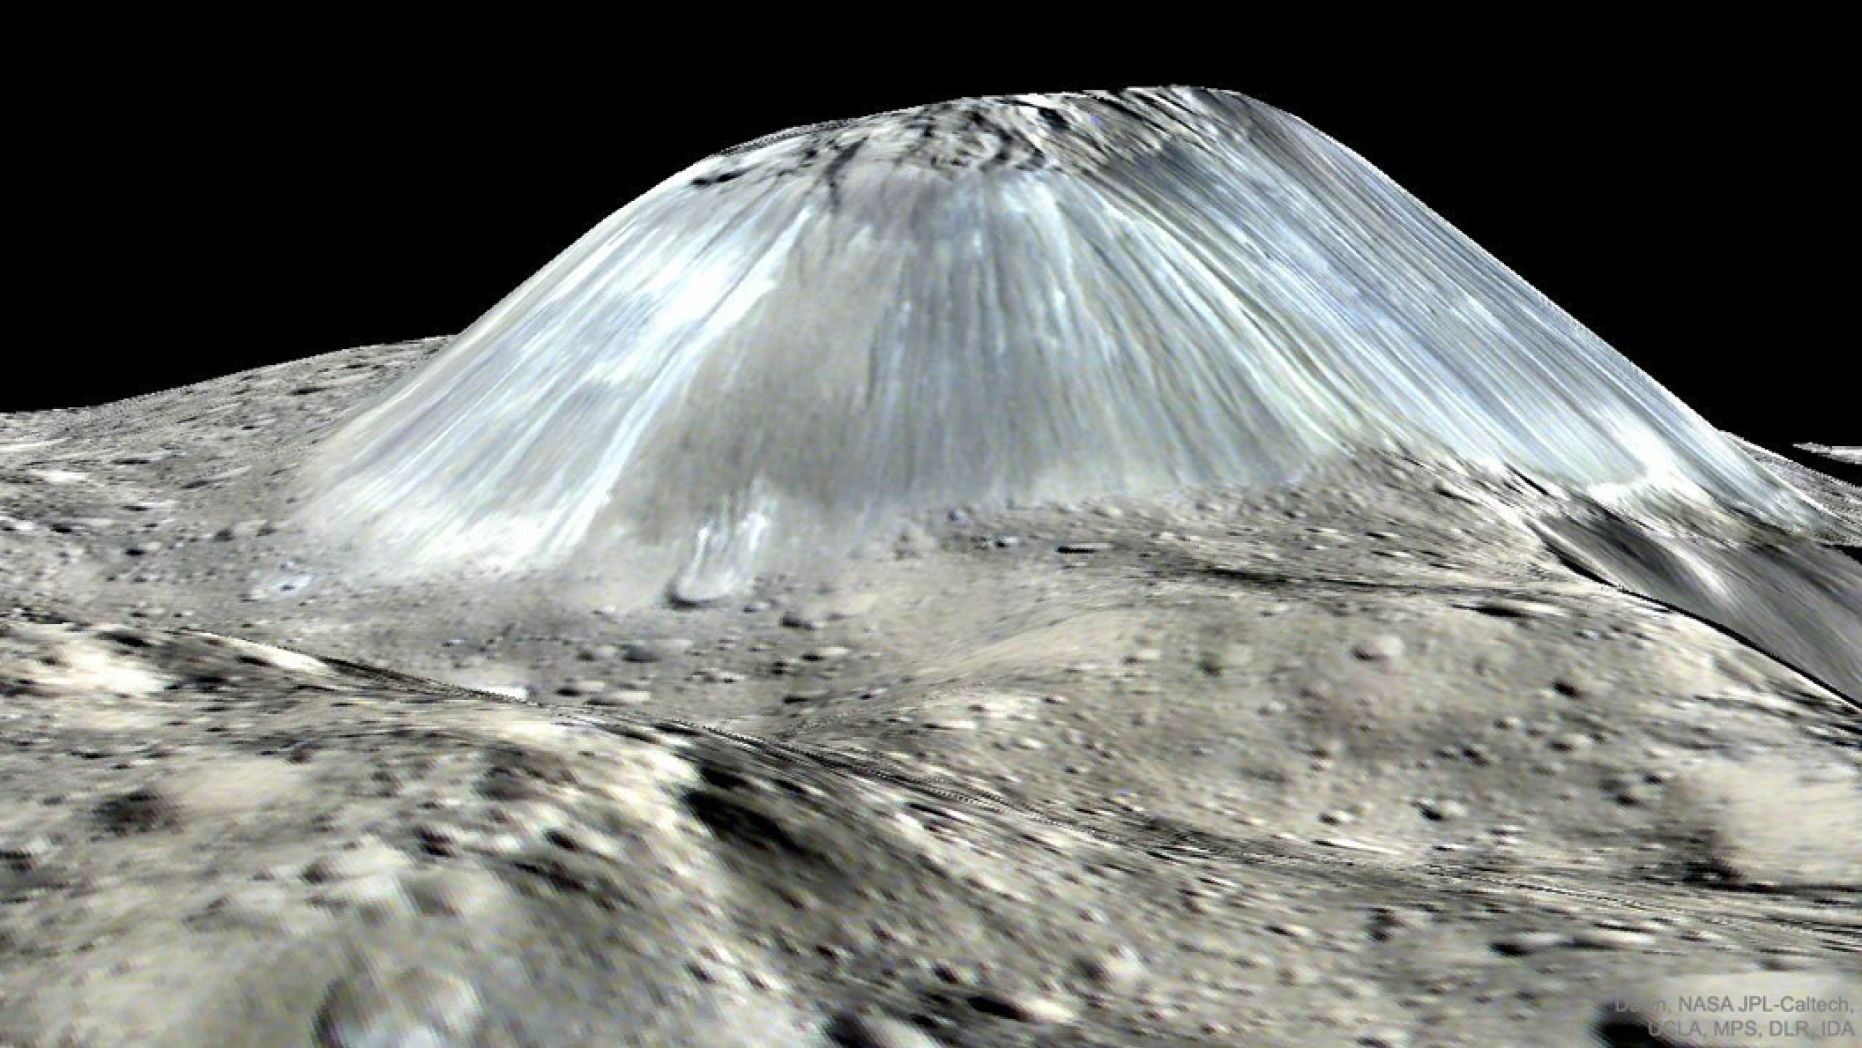 Ahuna Mons on Asteroid Ceres